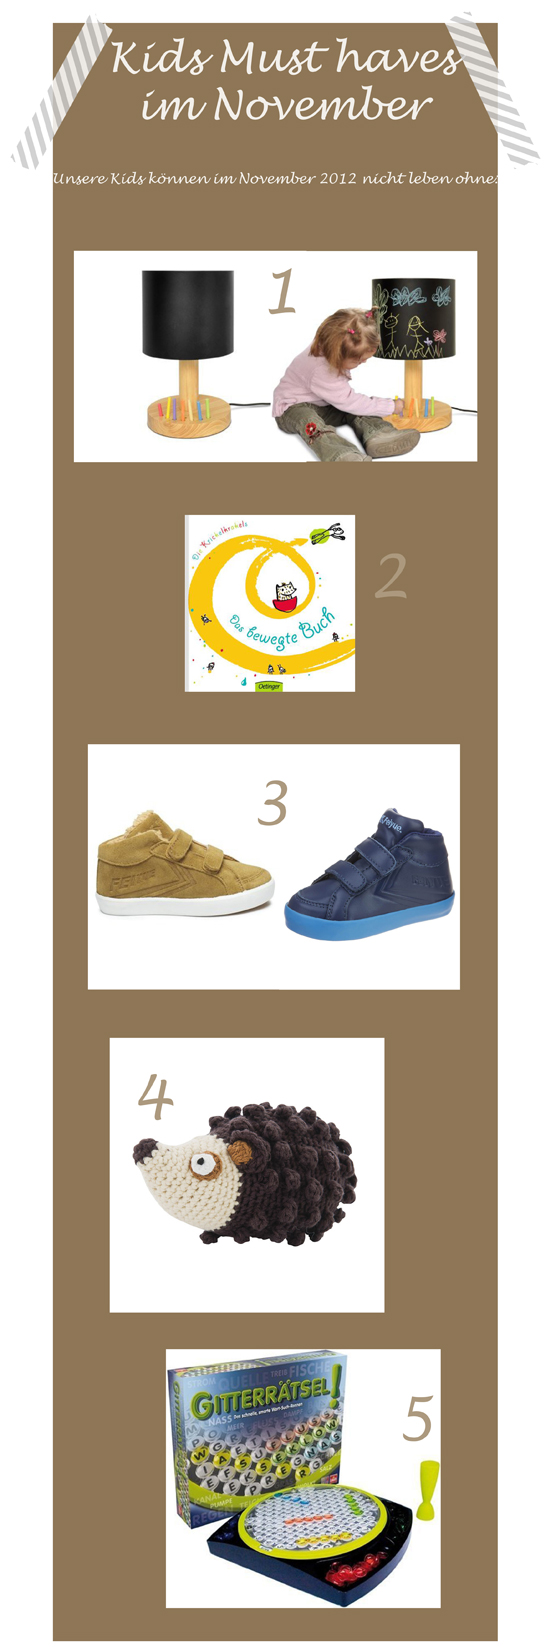 Kids Must haves November